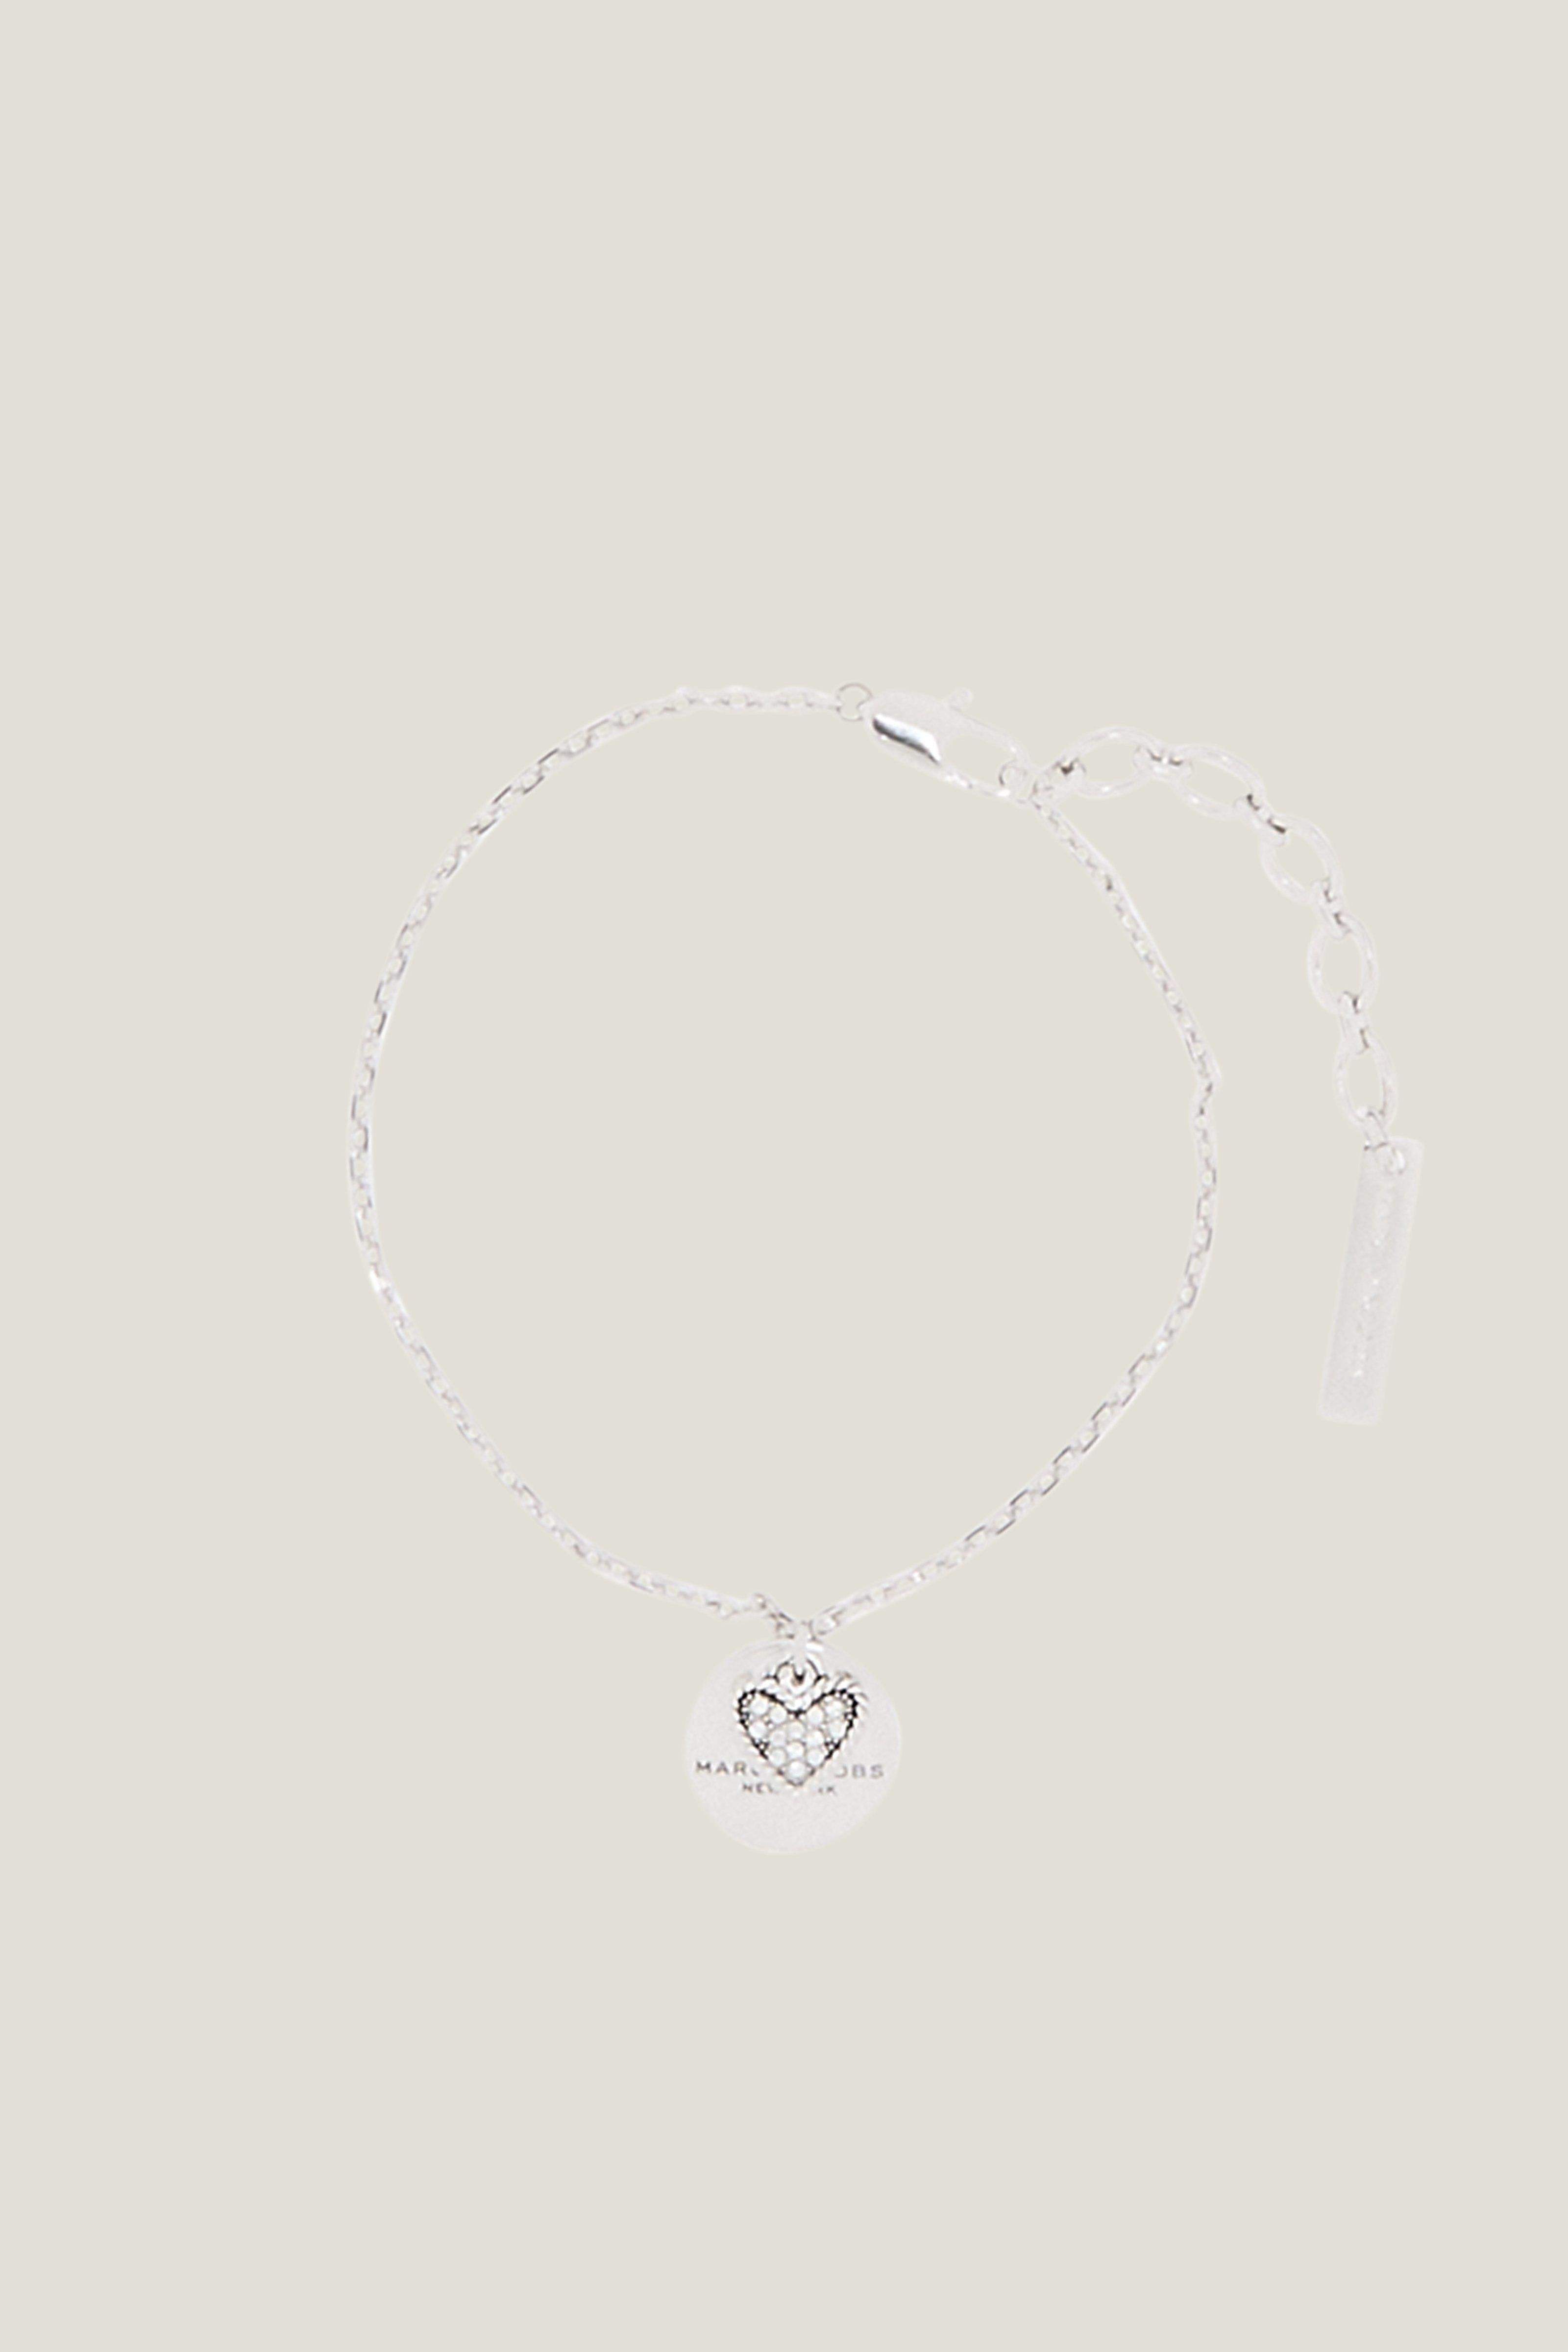 Marc Jacobs Mj Coin Bracelet In Crystal/Silver